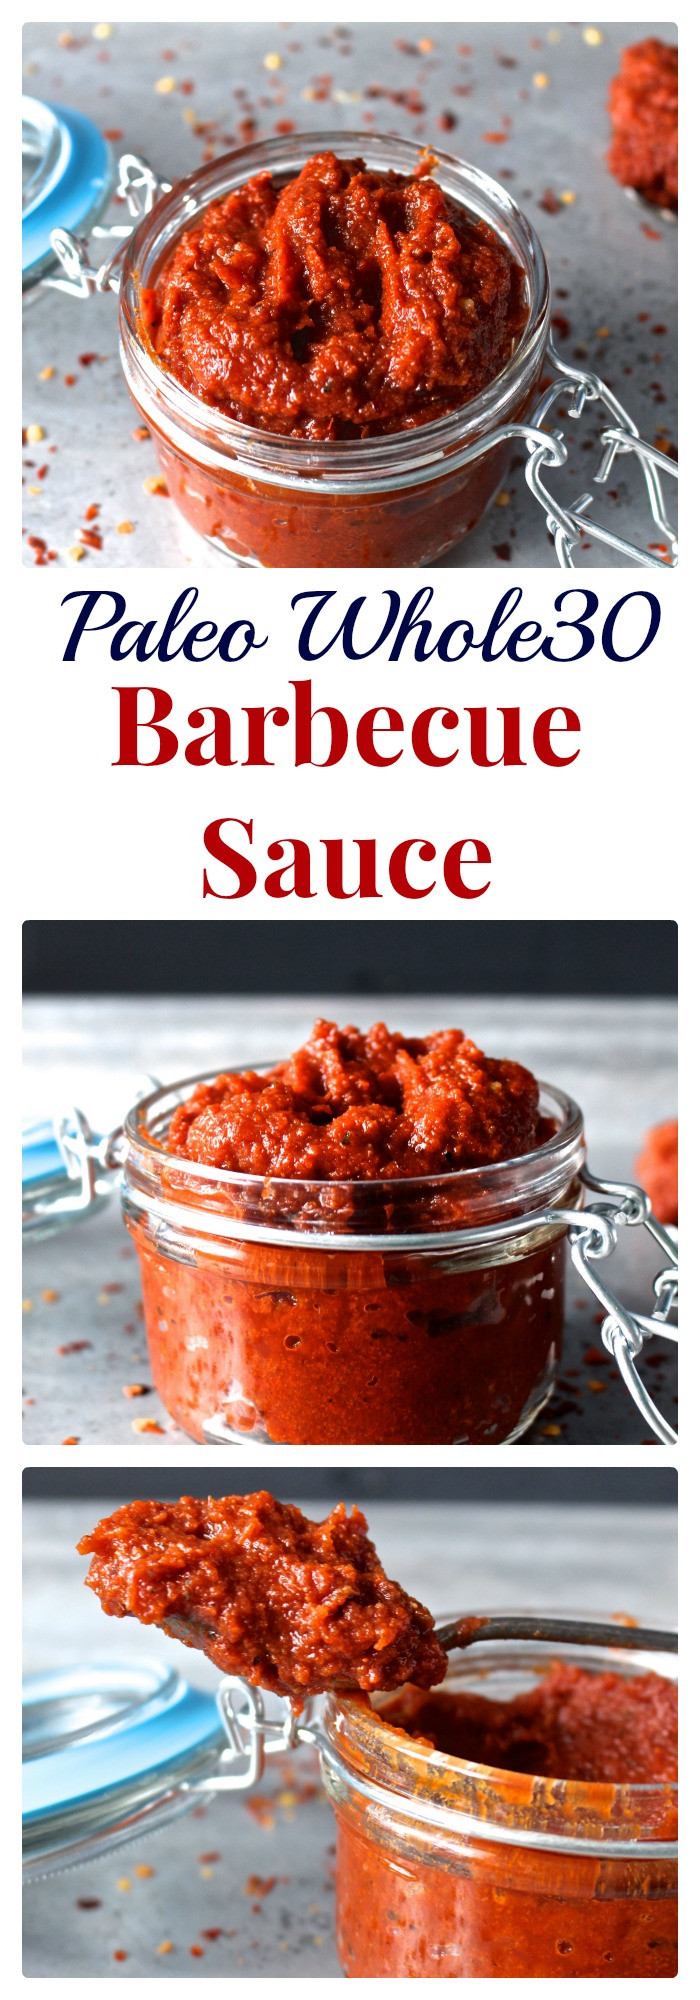 Whole30 Bbq Sauce Recipe  Paleo Whole30 Barbecue Sauce Jay s Baking Me Crazy